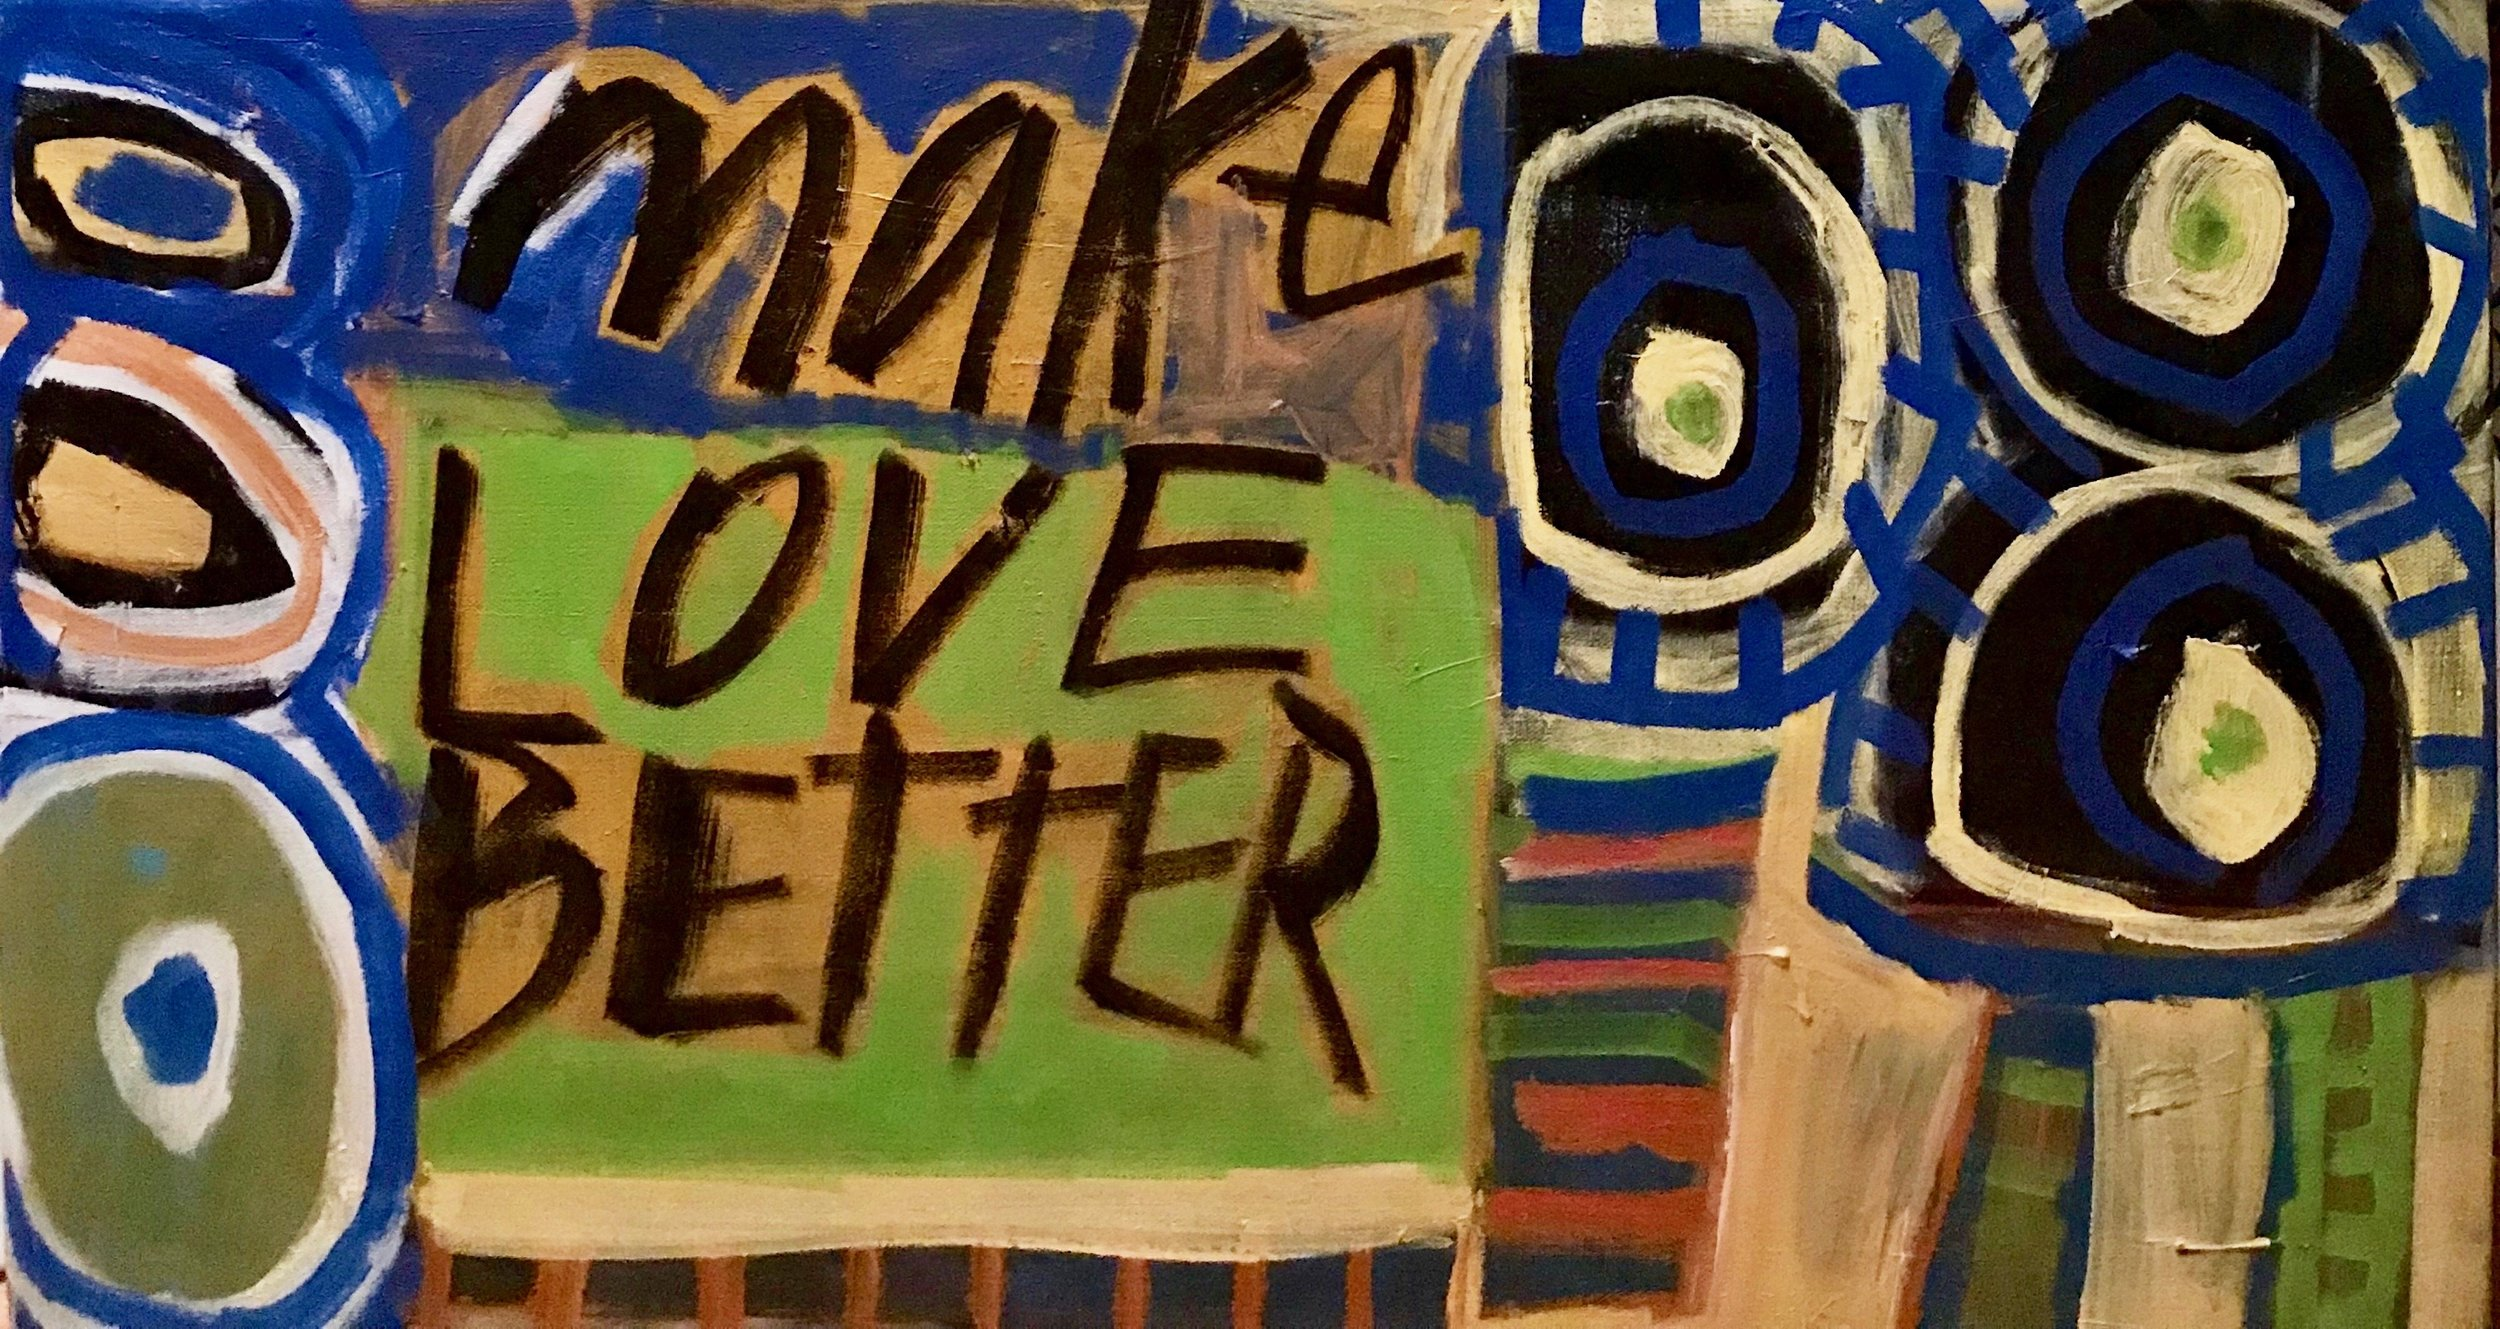 thumbnail of painting by Randee Levine, designer of book's title font